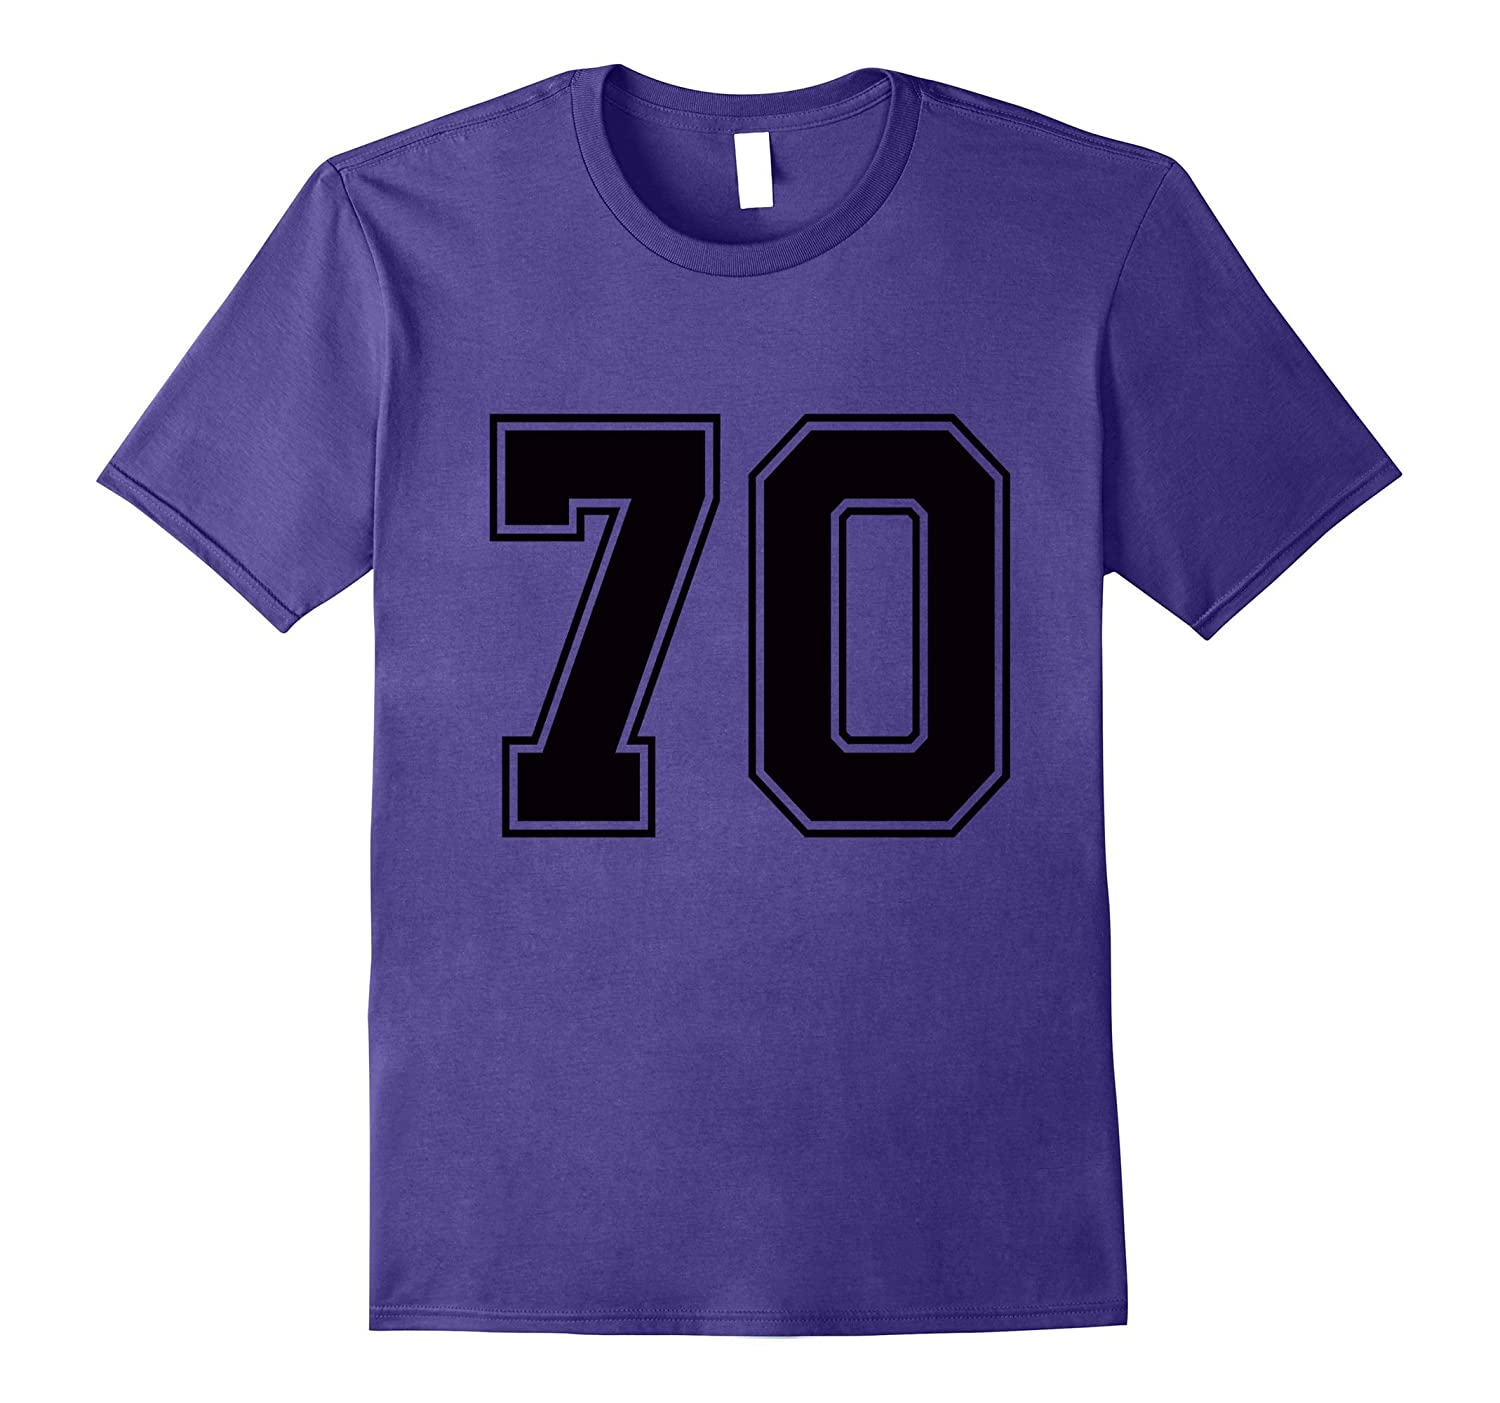 #70 Number 70 Sports. Jersey T-shirt My Favorite Player #70-TH